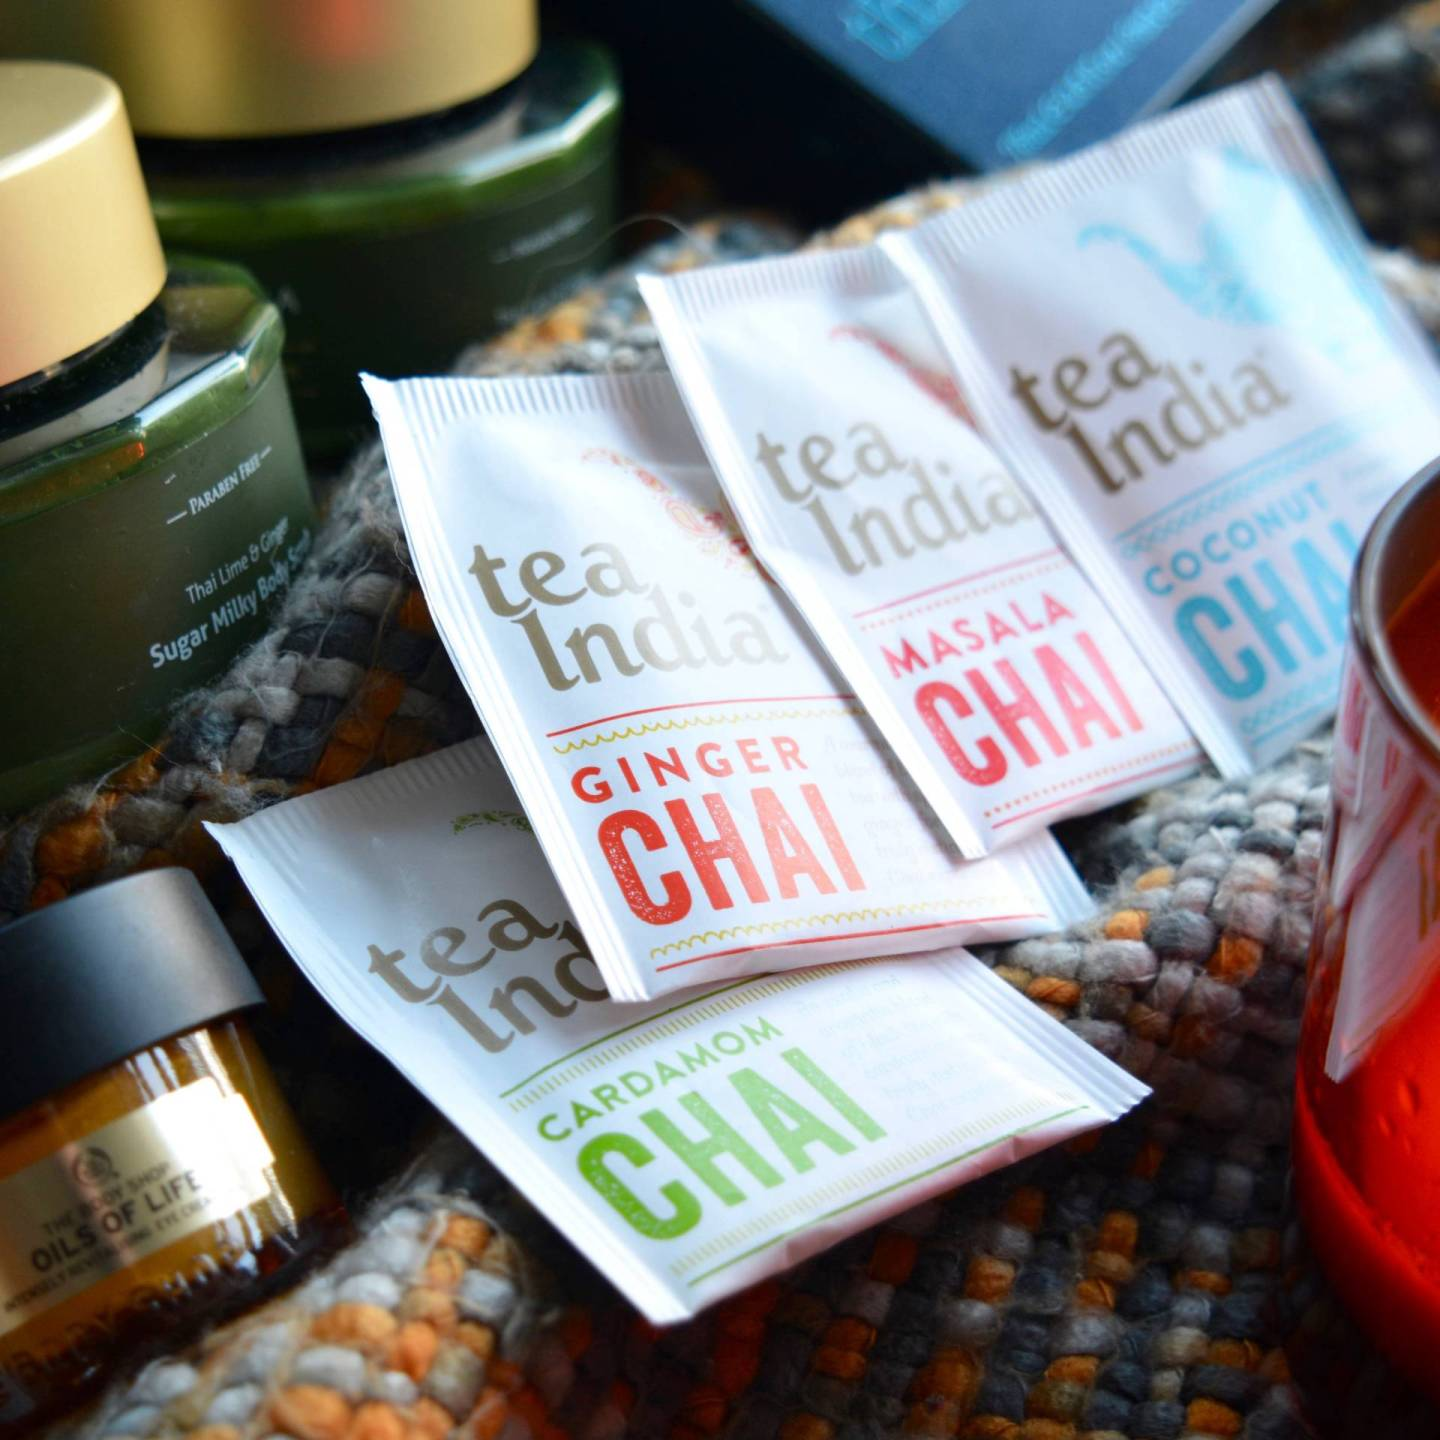 Winter pamper - A lovely, warming cup of Tea India flavoured chai tea is the perfect way to make you feel all warm and snuggly!